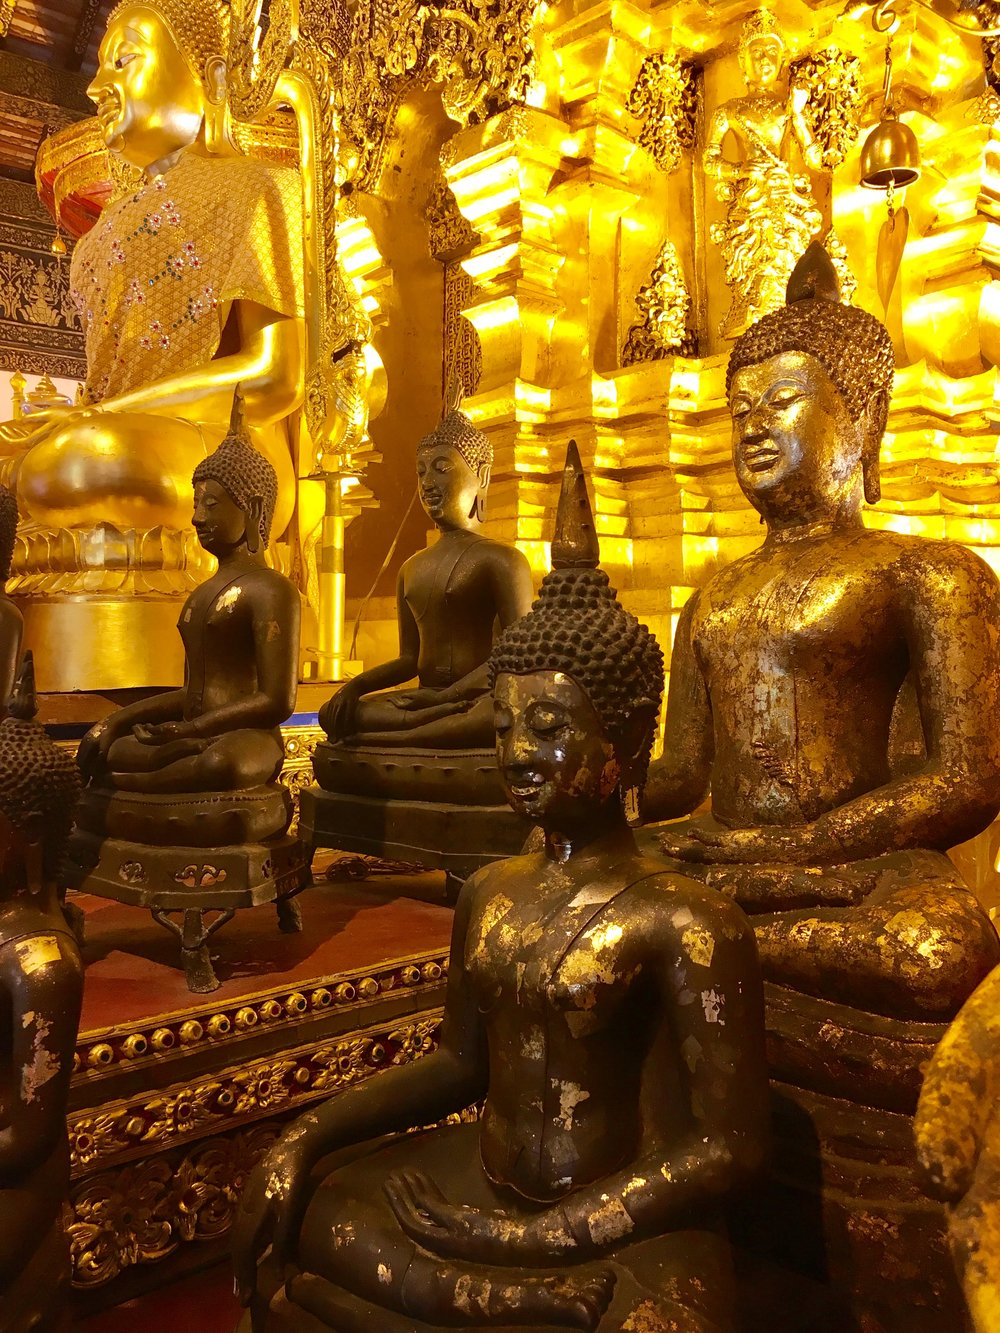 It's not unusual for viharns to have multiple statues of the Buddha